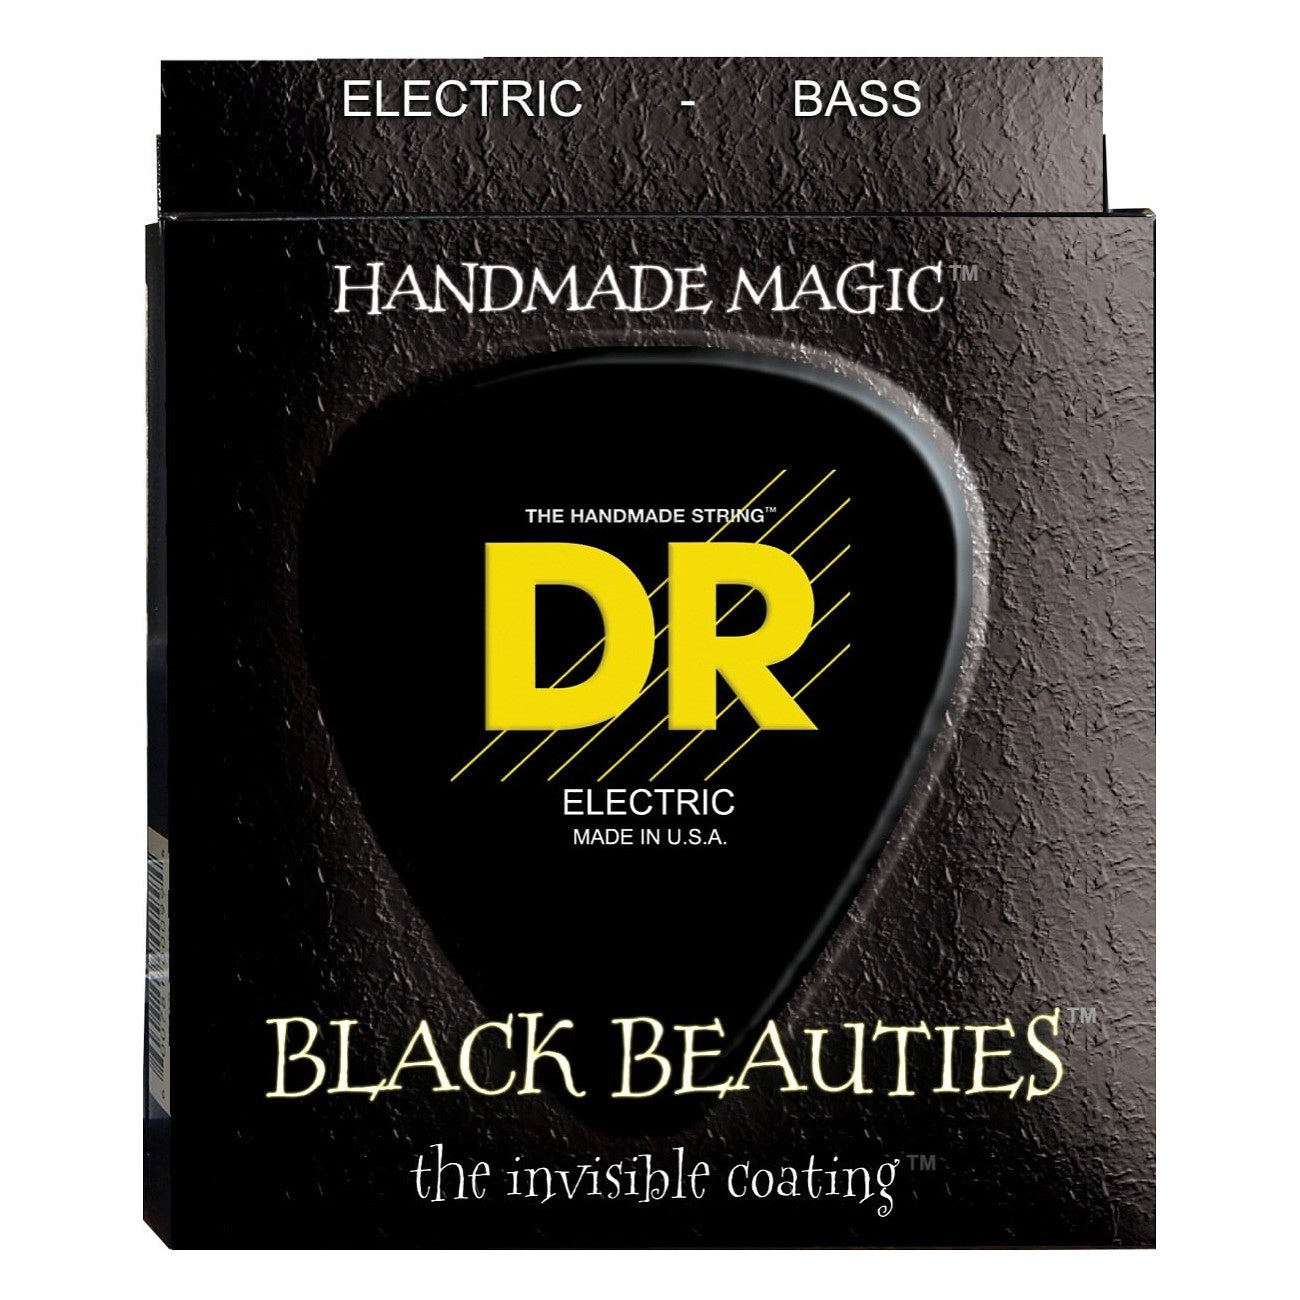 DR Strings BKB545 Black Beauties 5-String Electric Bass Strings (Medium, 45-125), BKB-545, Medium, 45-125